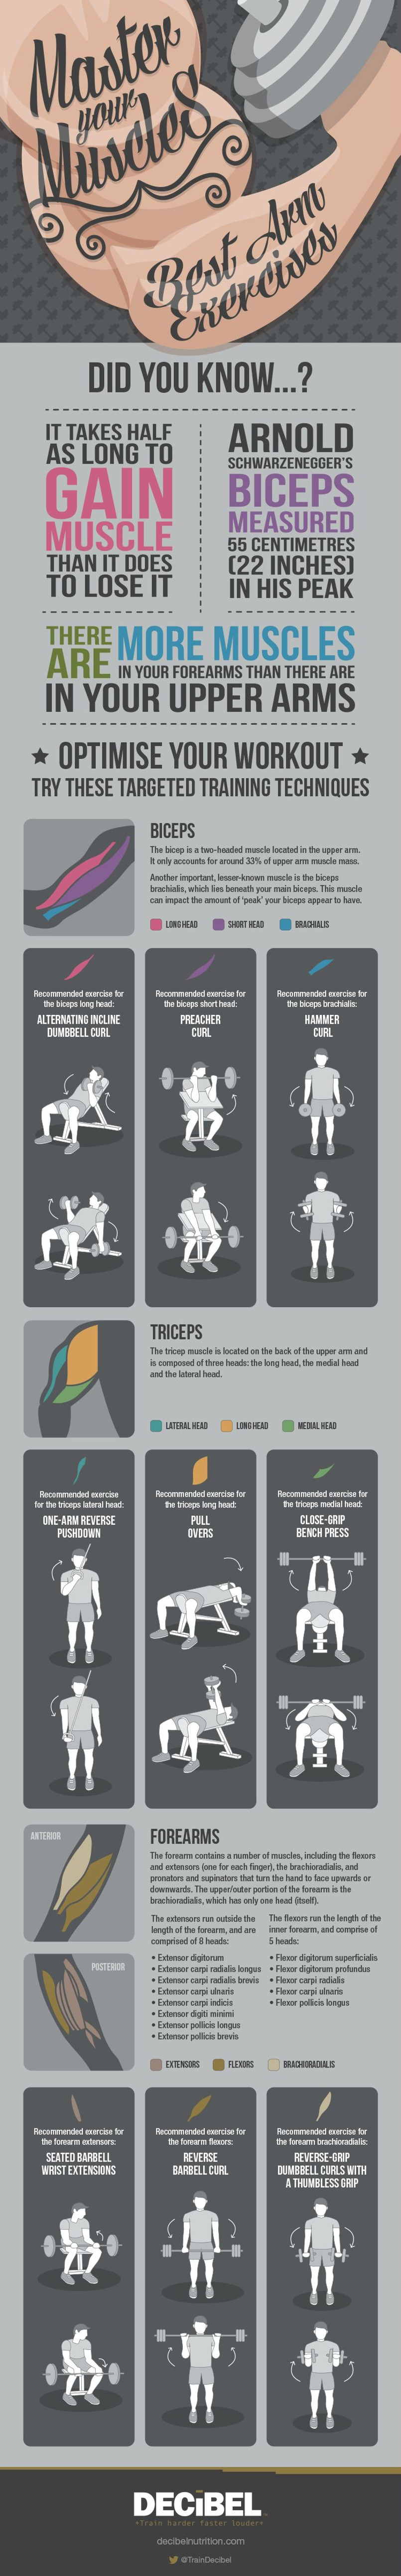 How to Develop the Best Arm Muscles Ever! - Infographic